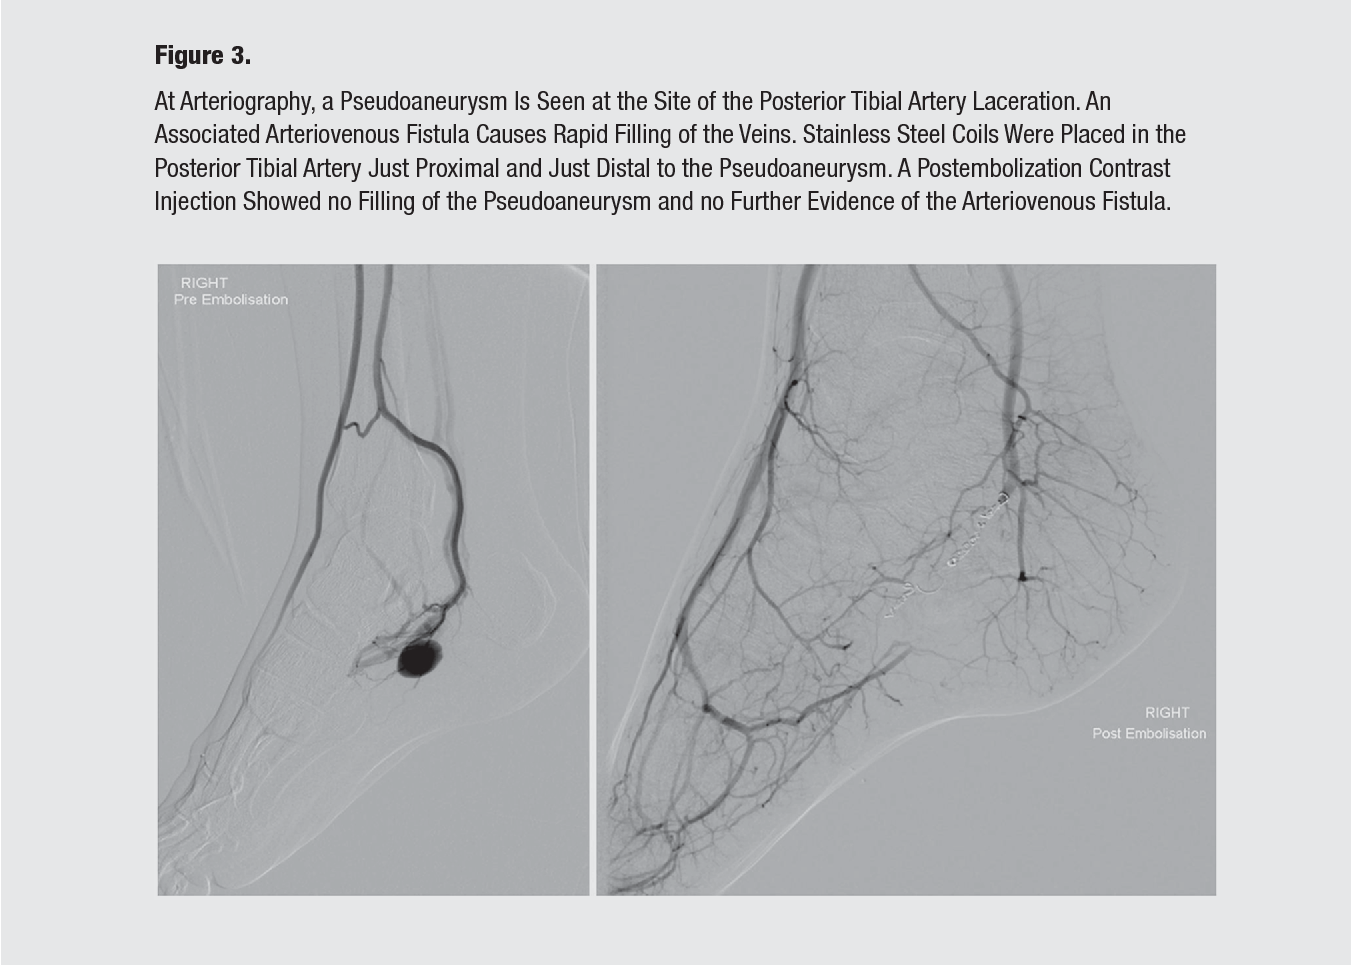 Traumatic Pseudoaneurysm Of The Posterior Tibial Artery Treated By